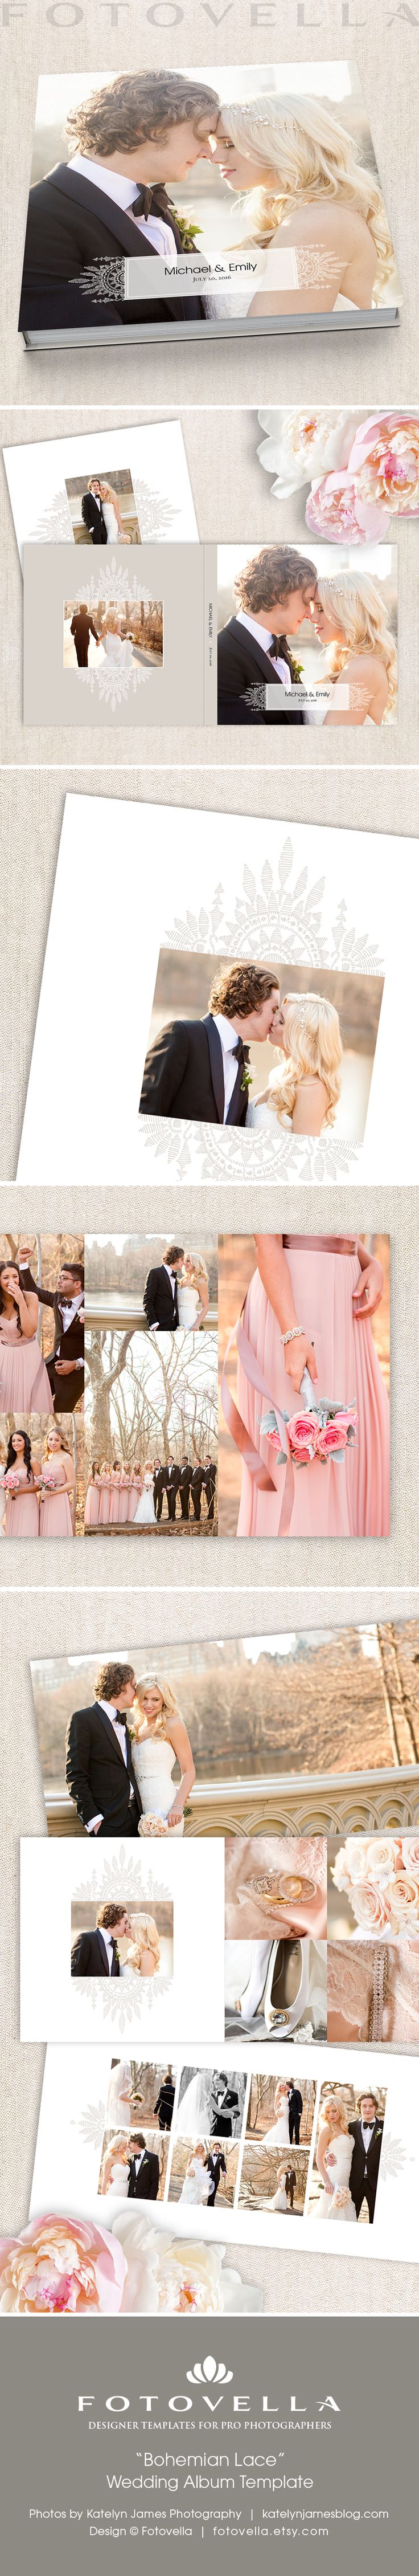 "Wedding album template • 12x12 and 10x10 • 15 spreads • 30 sides/pages • ""Bohemian Lace"" by FOTOVELLA • Featured images courtesy © Katelyn James Photography"